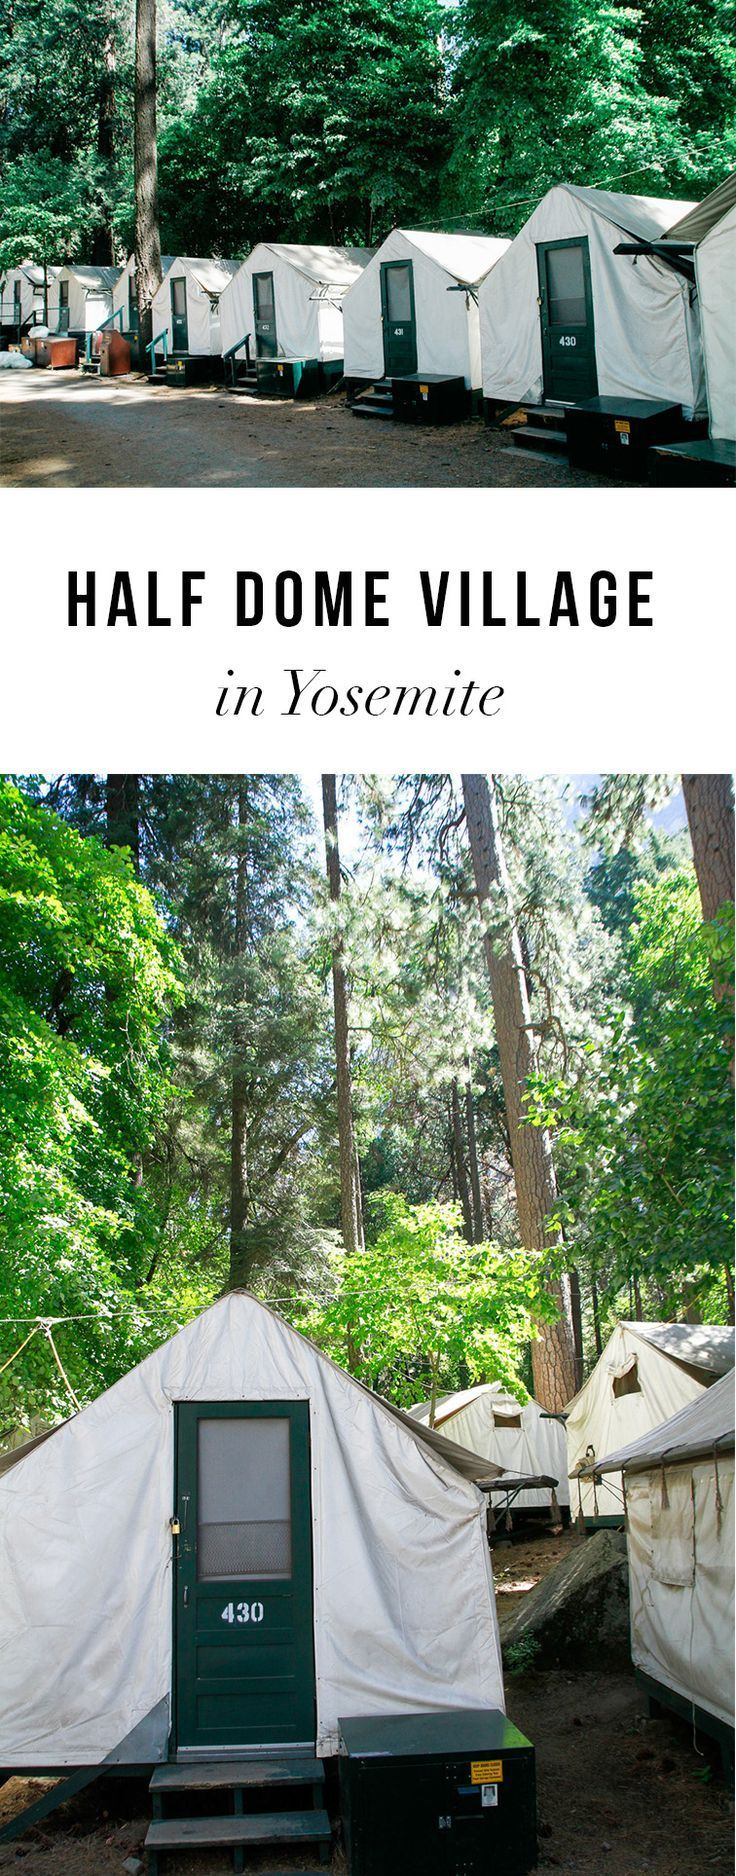 Half Dome Village in Yosemite is the BEST place to stay in the mountains. These cute tents are fun for all ages. Read more about Half Dome (used to be Camp Curry)